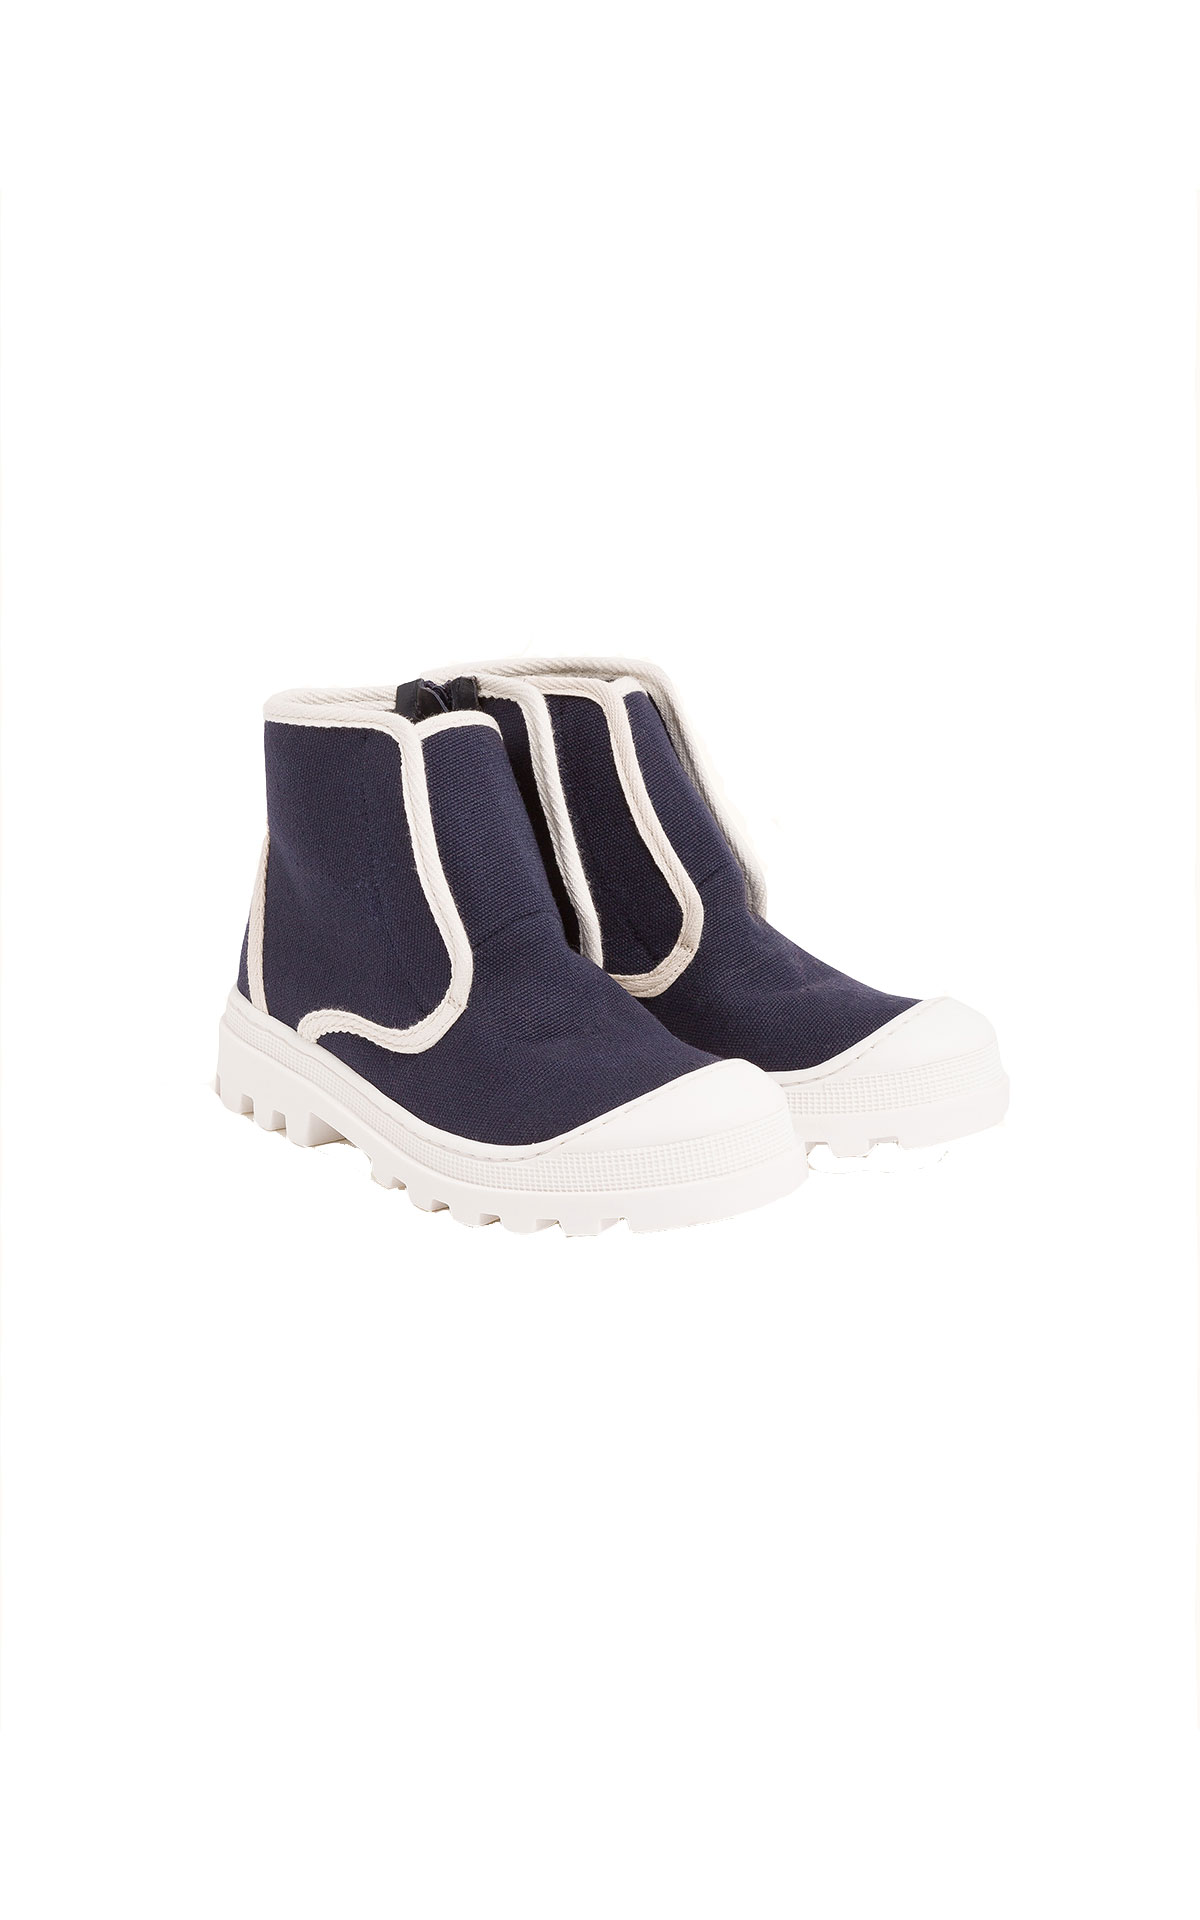 Bonpoint Boots from Bicester Village